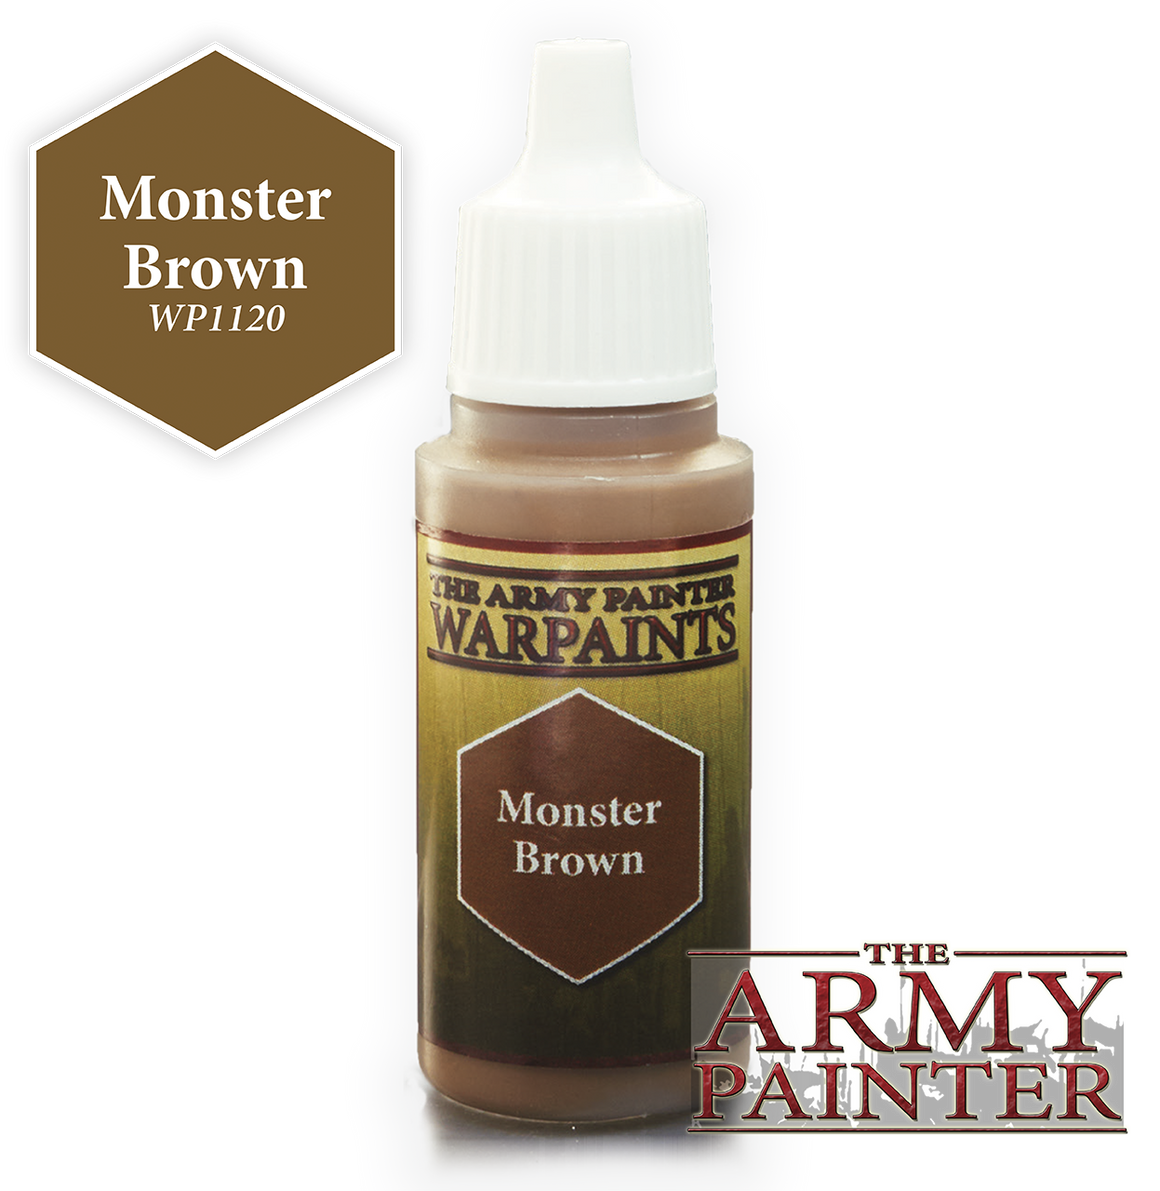 Army Painter Acrylic Warpaint - Monster Brown